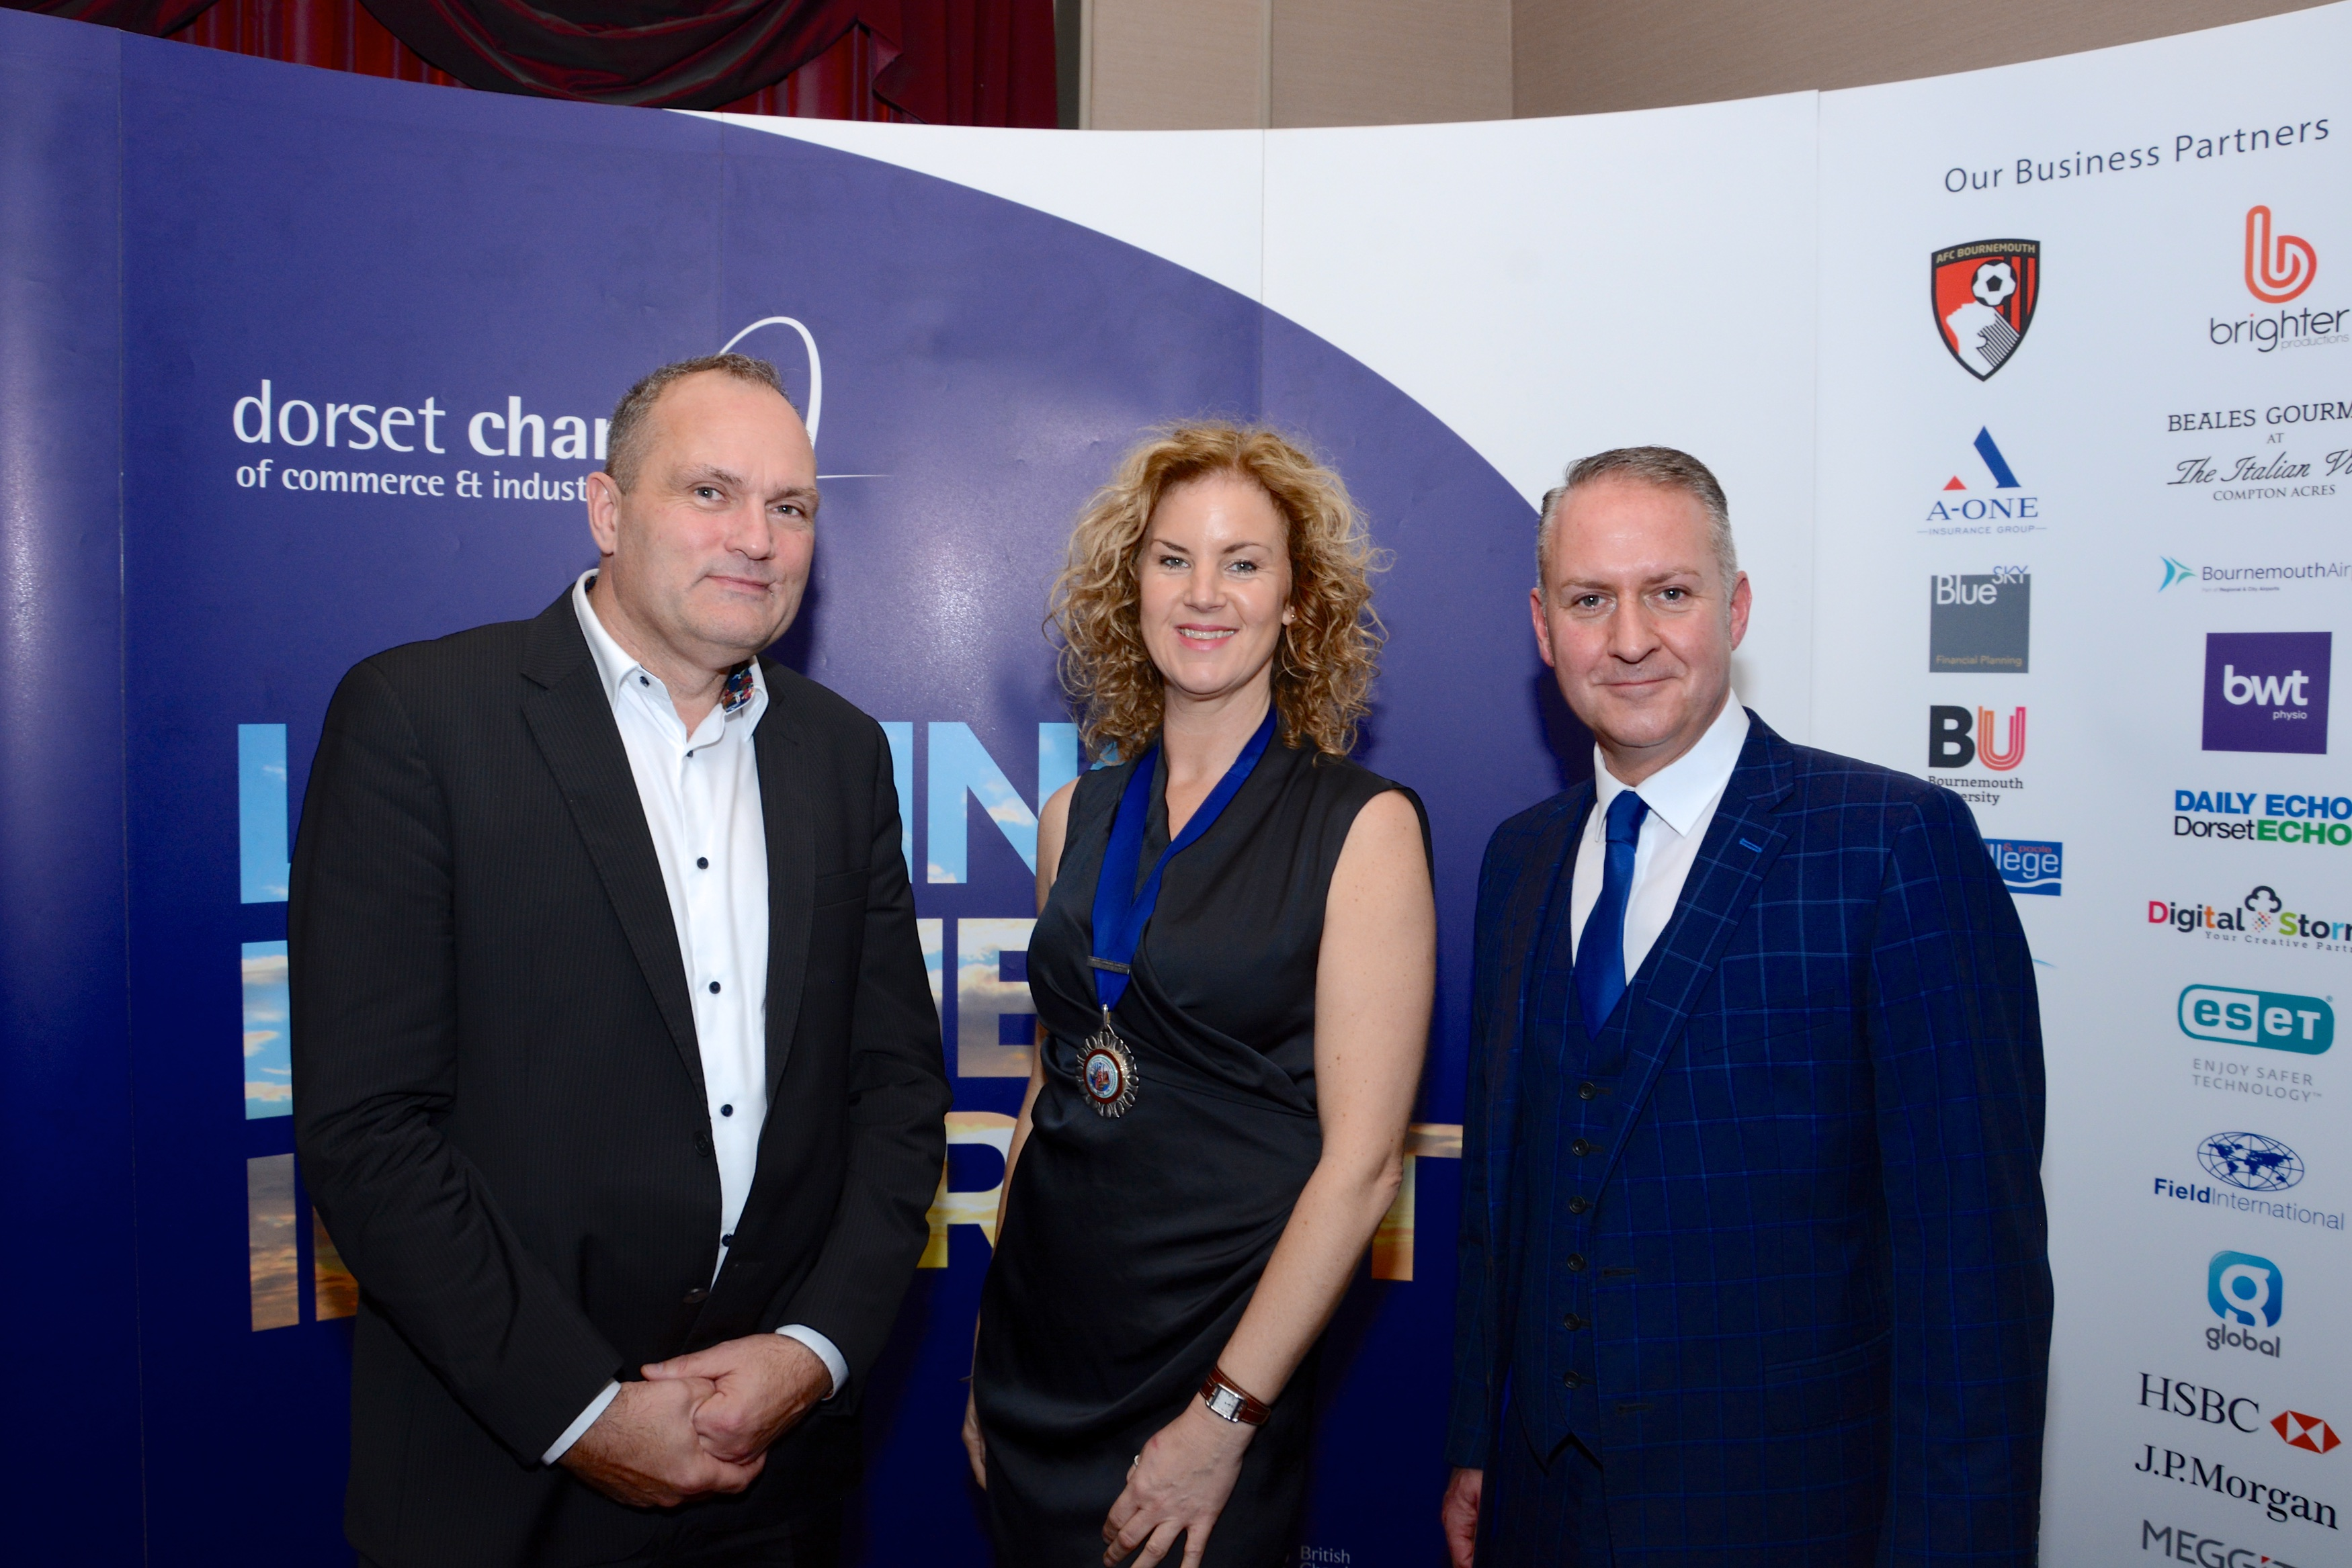 Paul Tansey, past president of DCCI, Liz Willingham, president of DCCI and Ian Girling, chief executive of DCCI